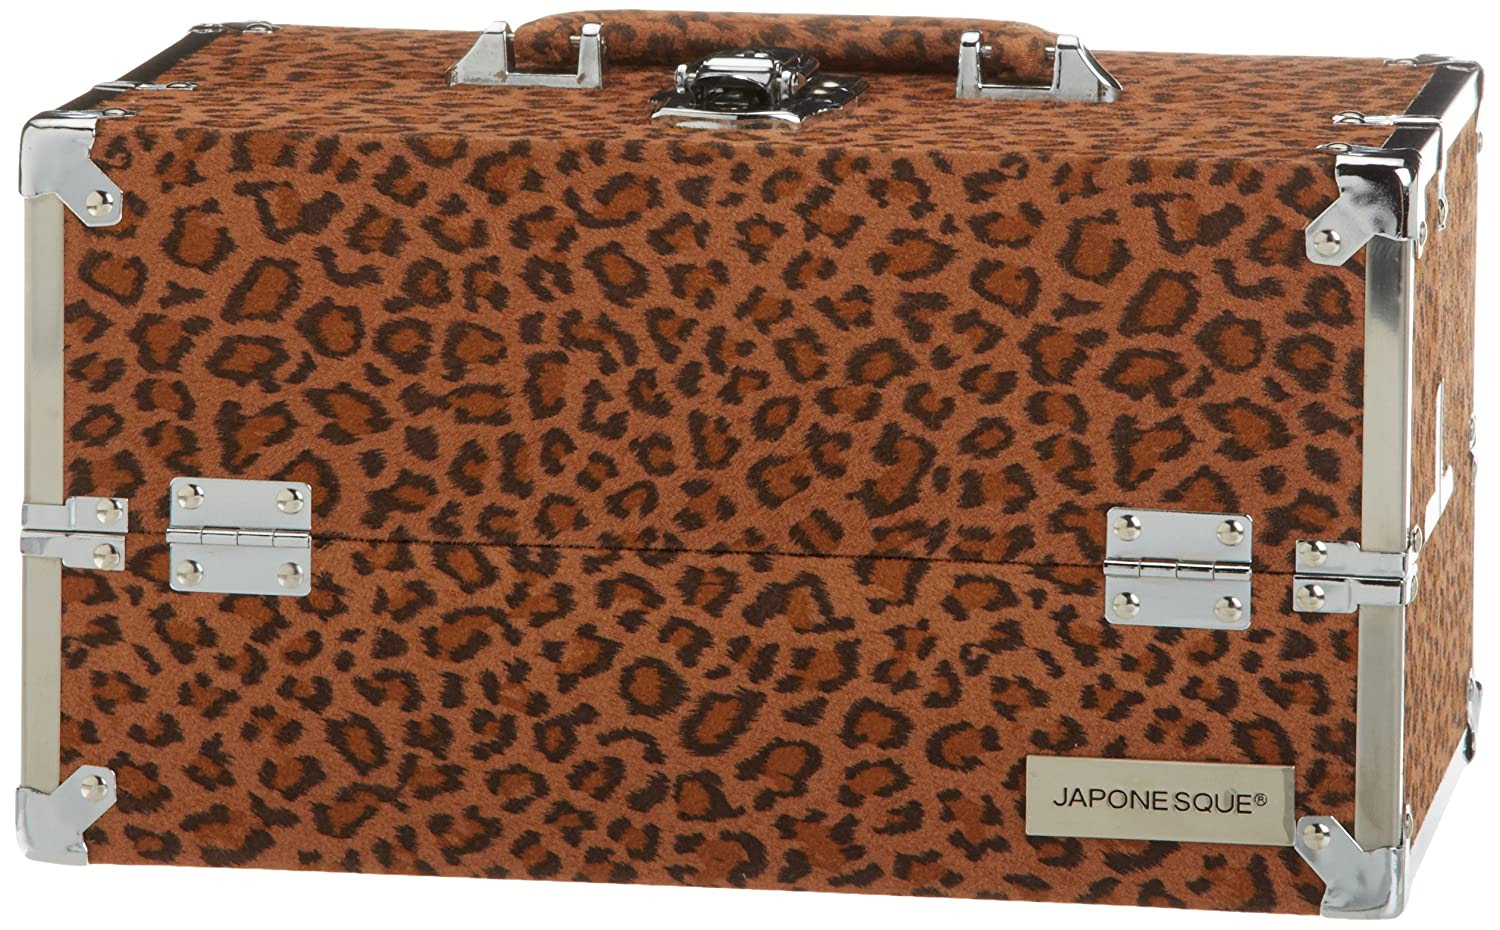 2014 Makeup Gift Guide - Train Case